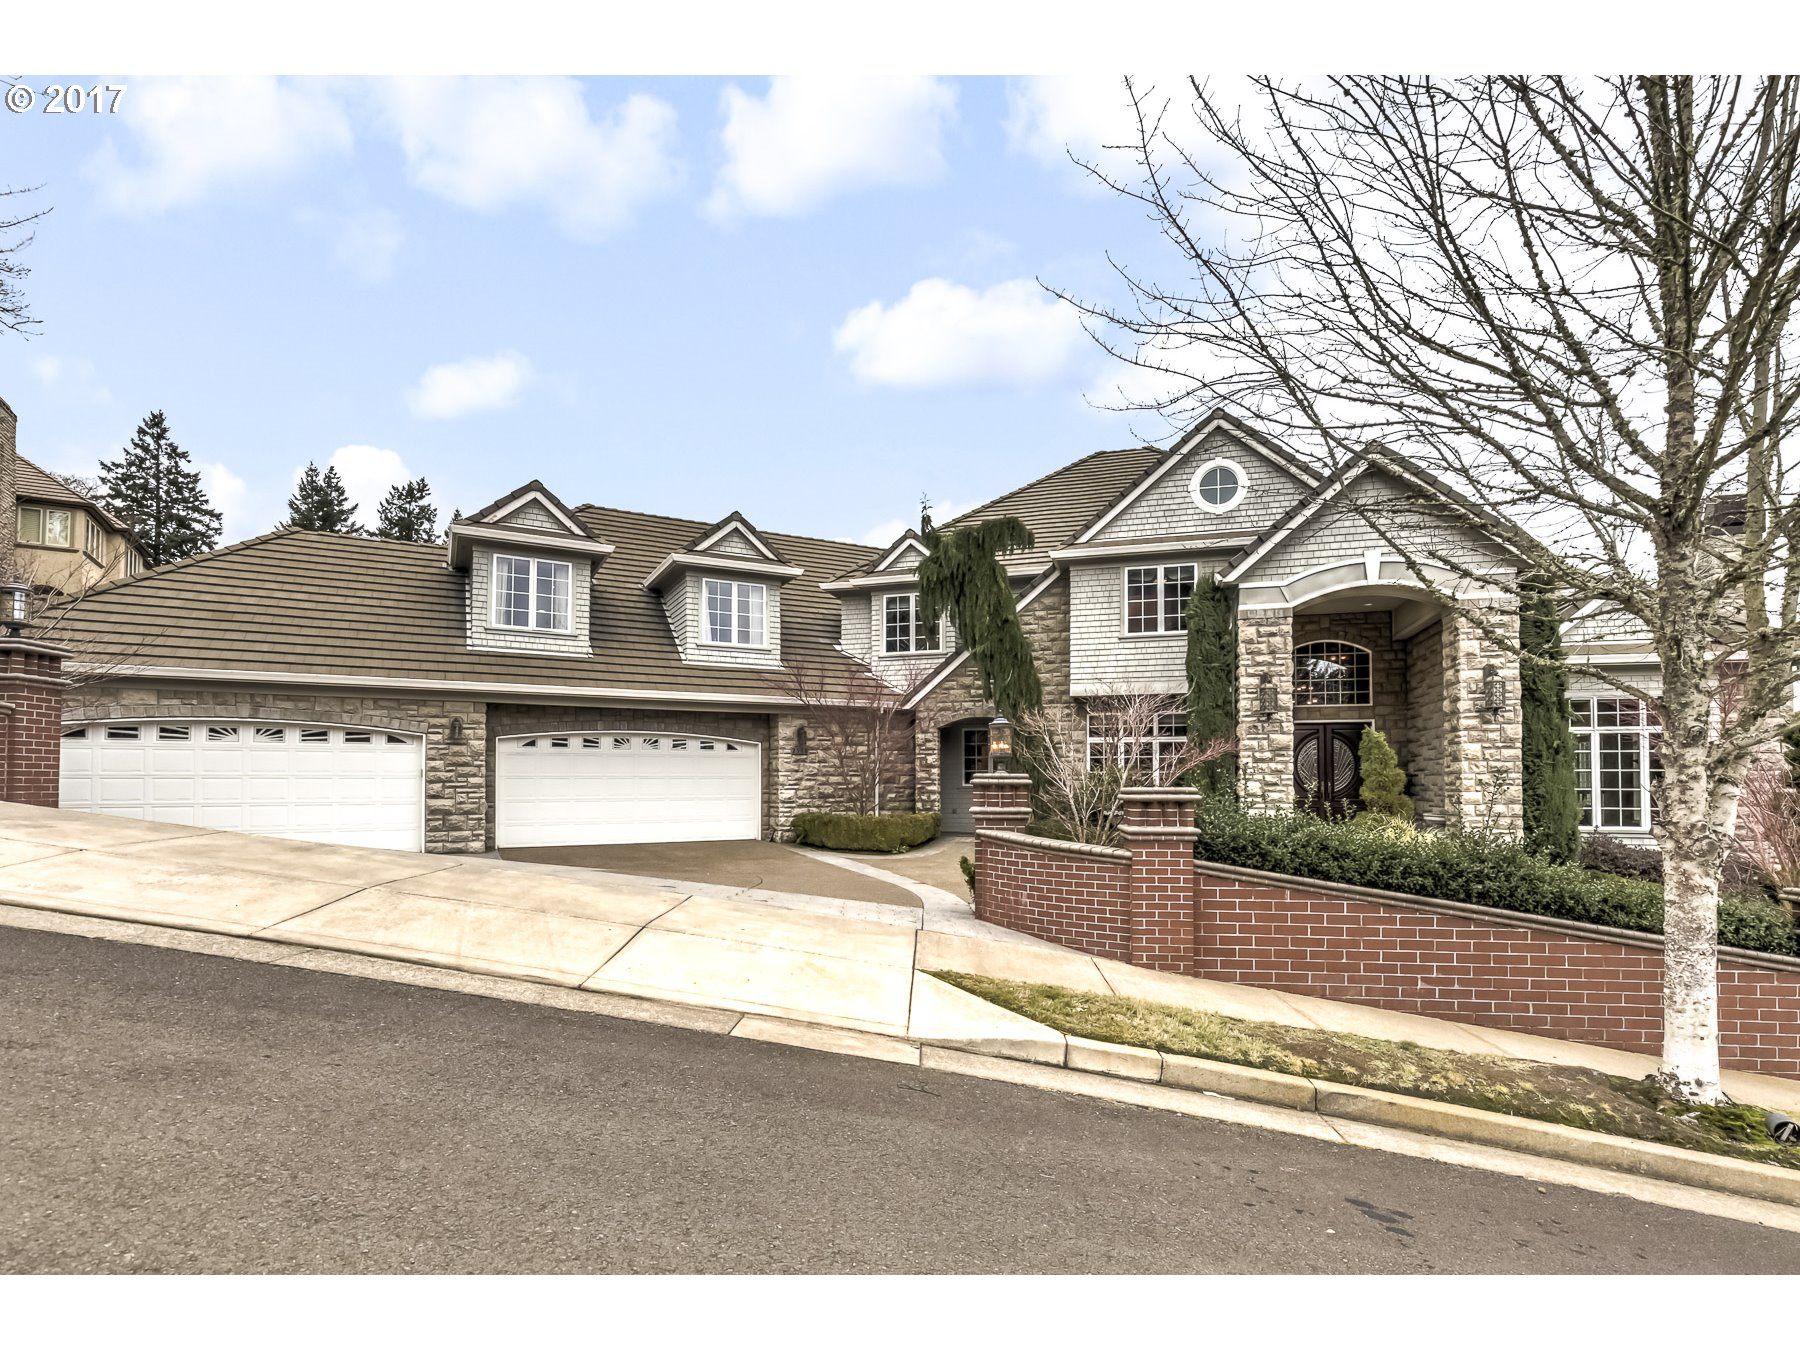 2550 LORINDA CT, West Linn, OR 97068